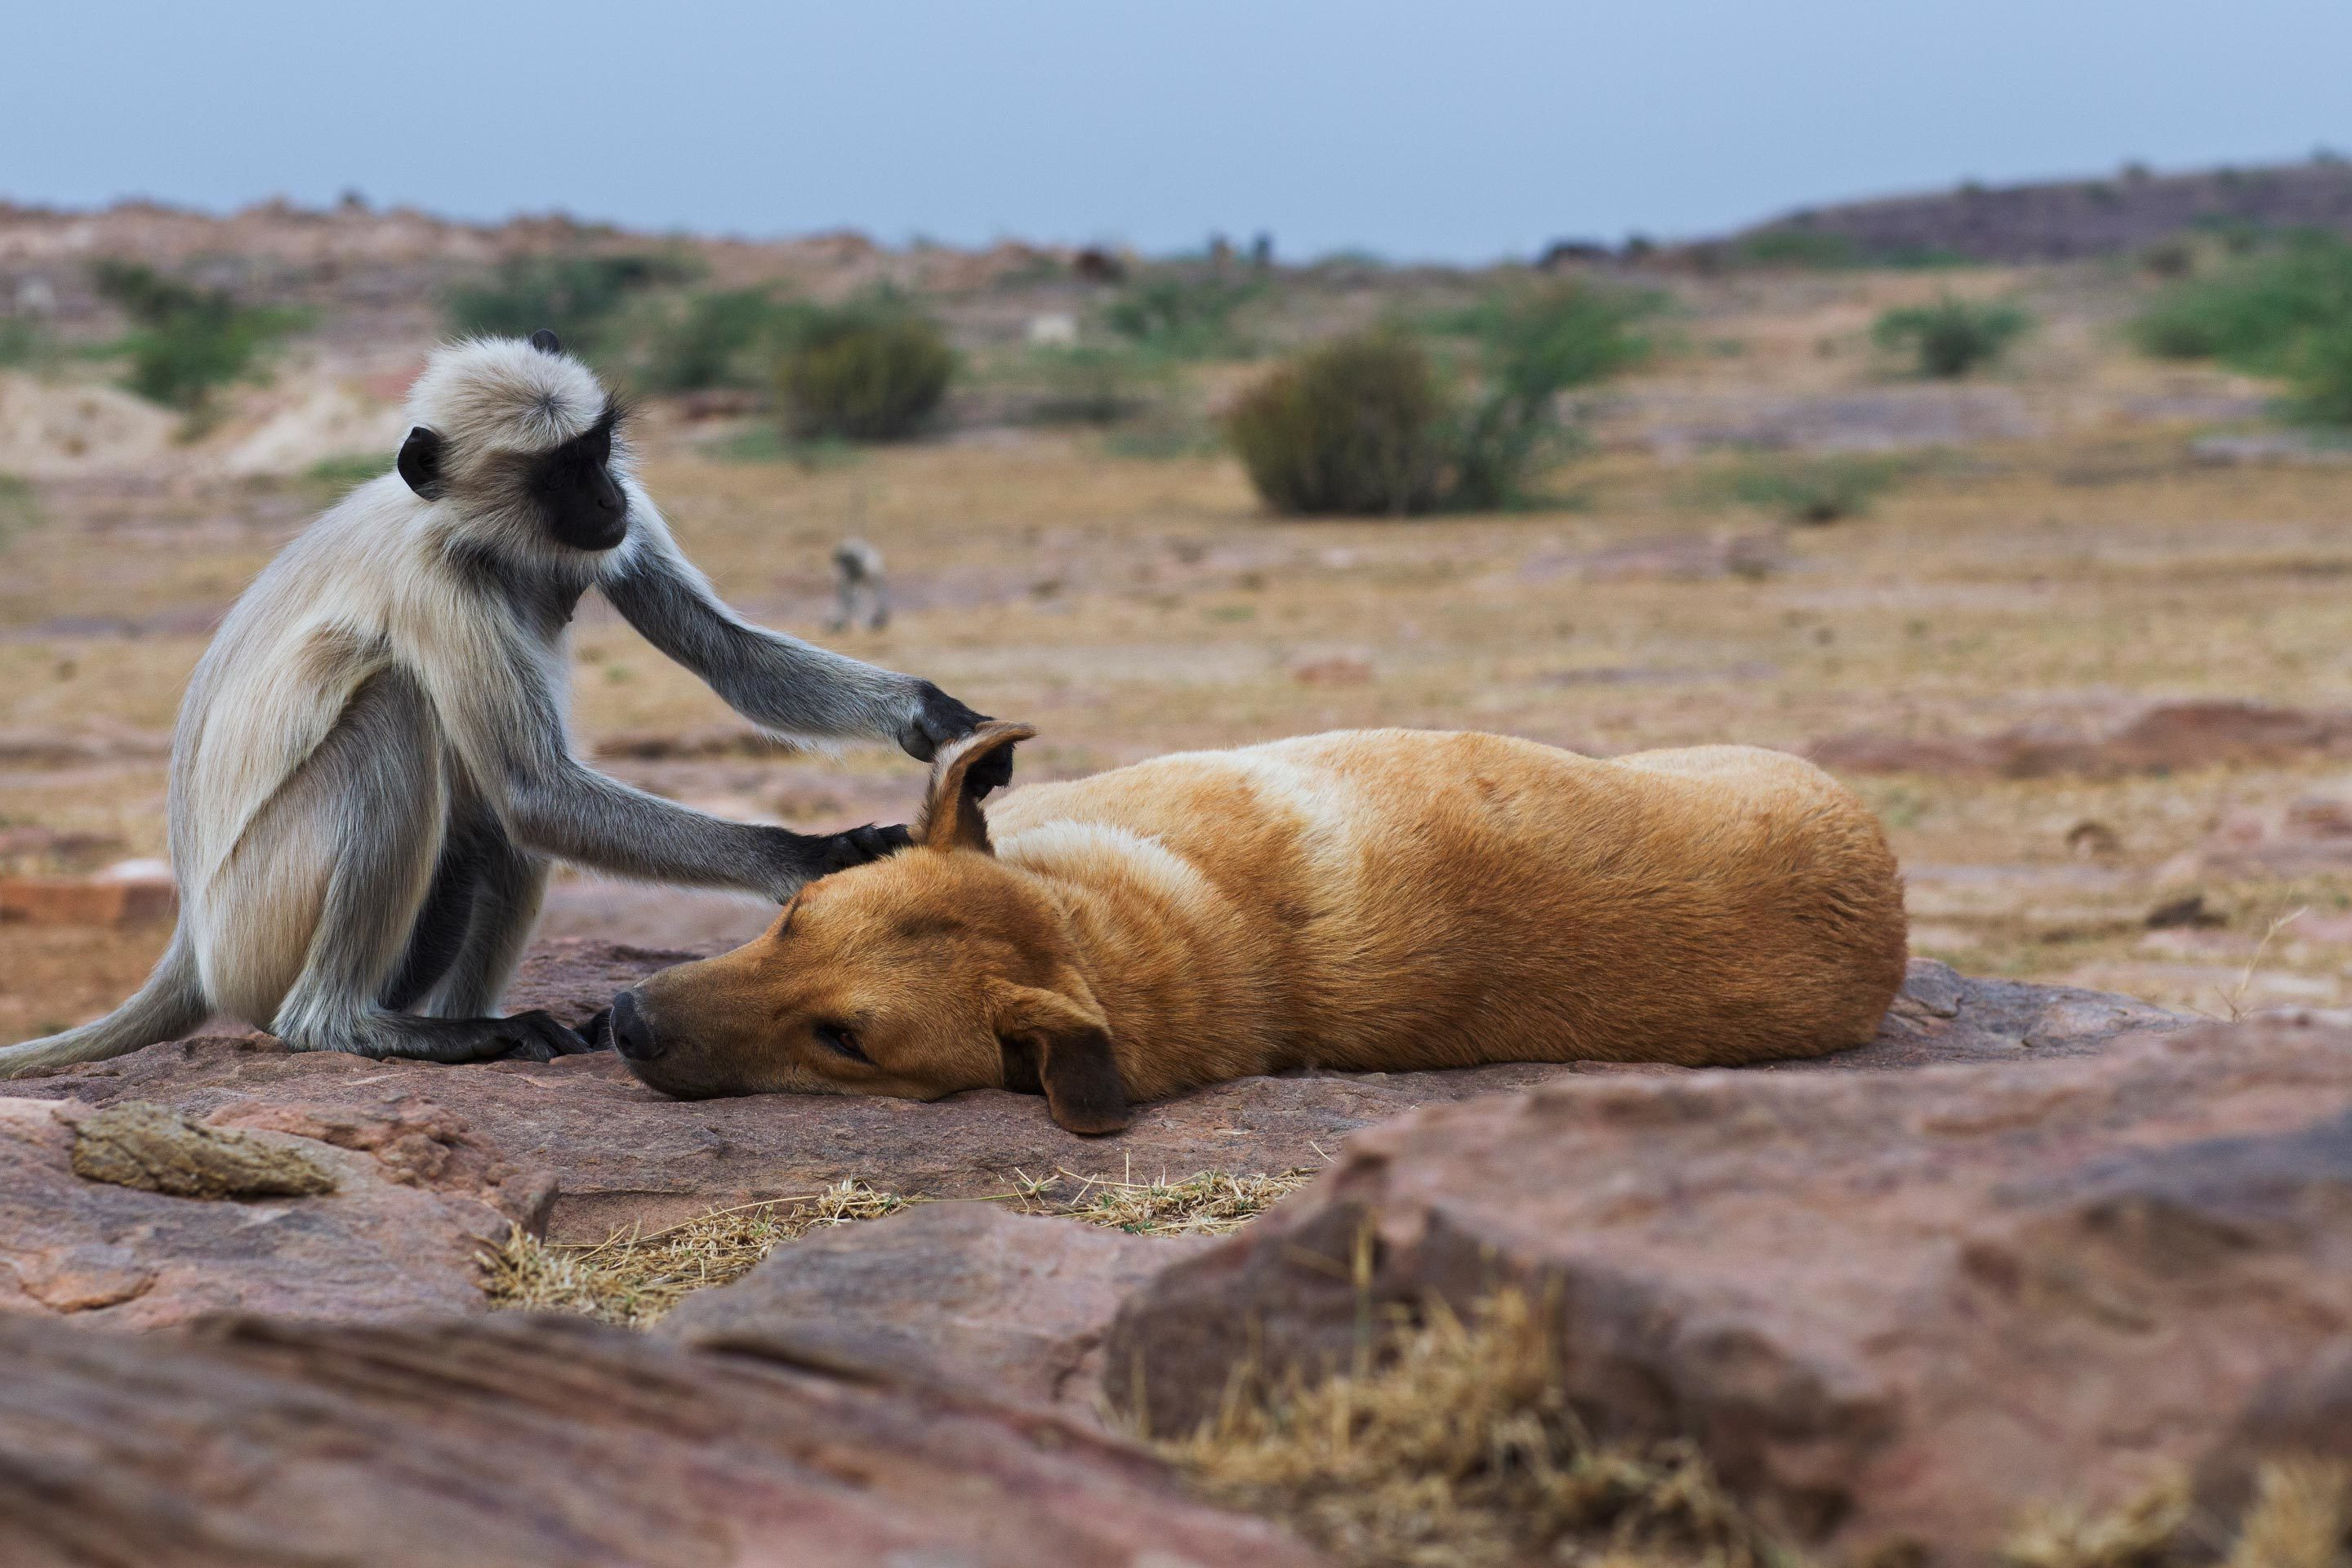 In India, a southern plains gray langur grooms a resting dog. Evolutionary theorists have puzzled over such altruistic behaviors, particularly among unrelated creatures, because selfishness often seems like a better survival strategy in the context of natural selection. A new theory suggests that parasites might tip the odds in favor of host altruism for their own gain.